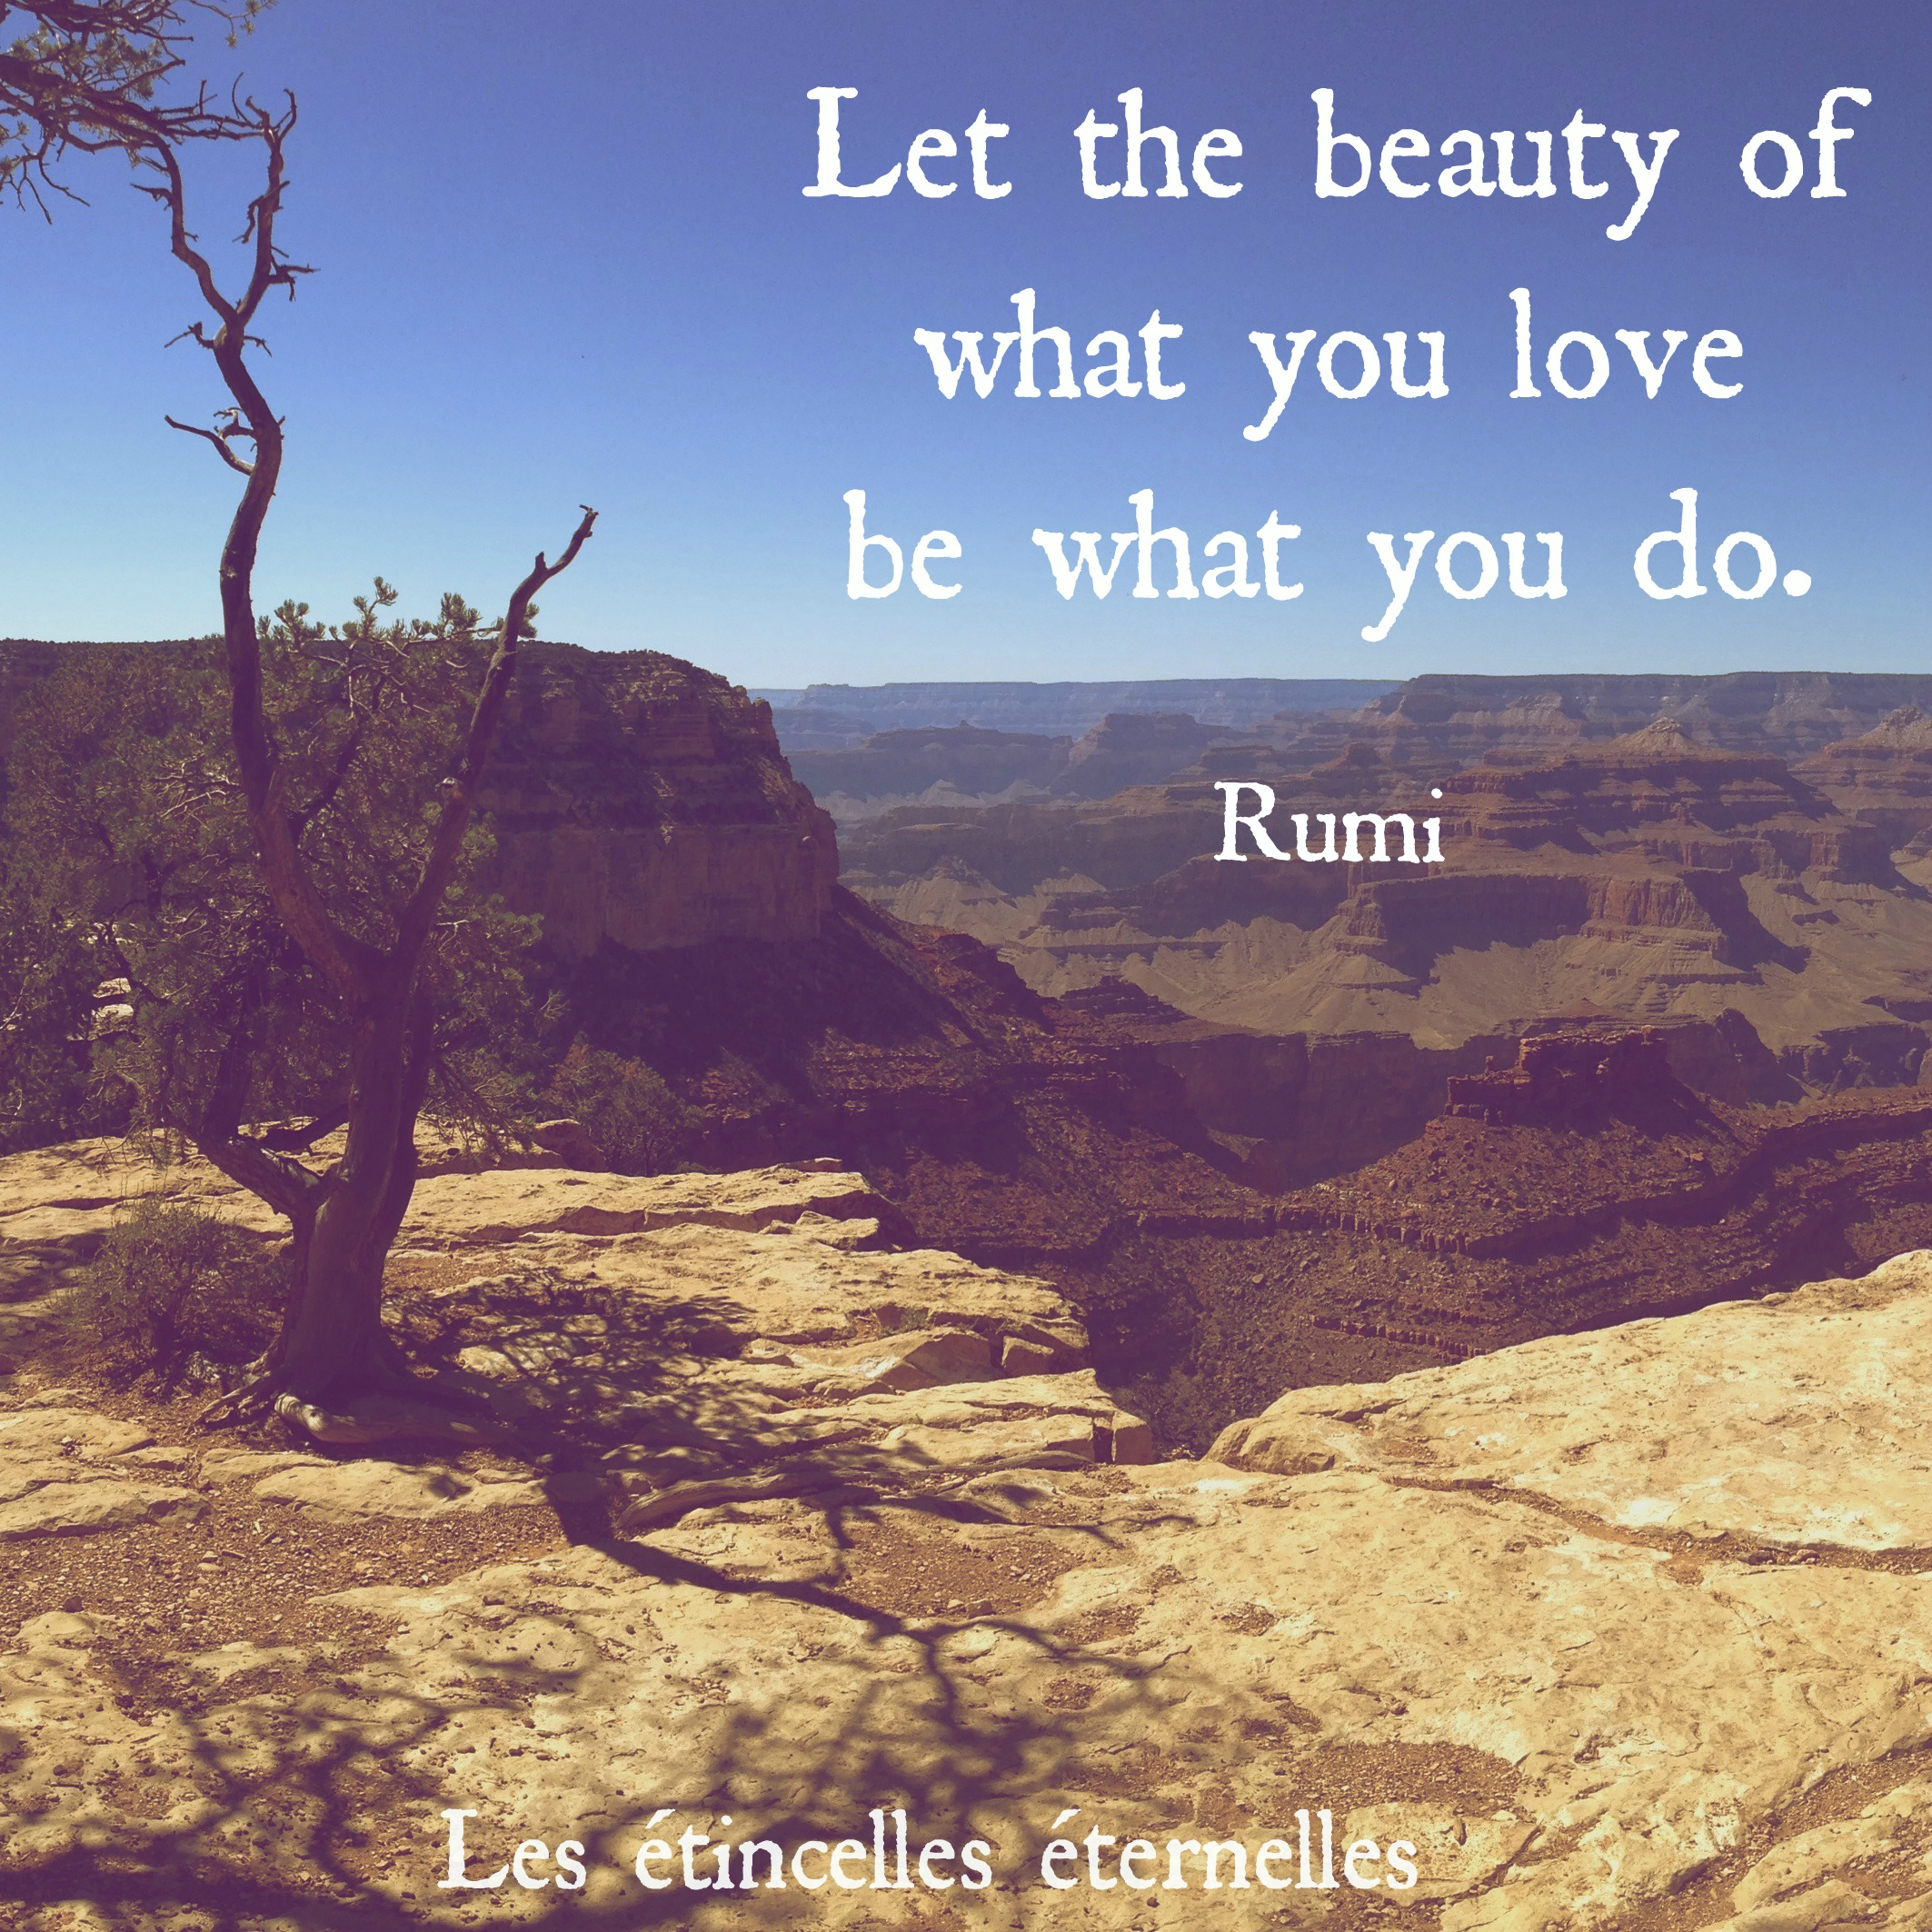 let-the-beauty-of-what-you-love-be-what-you-do-rumi